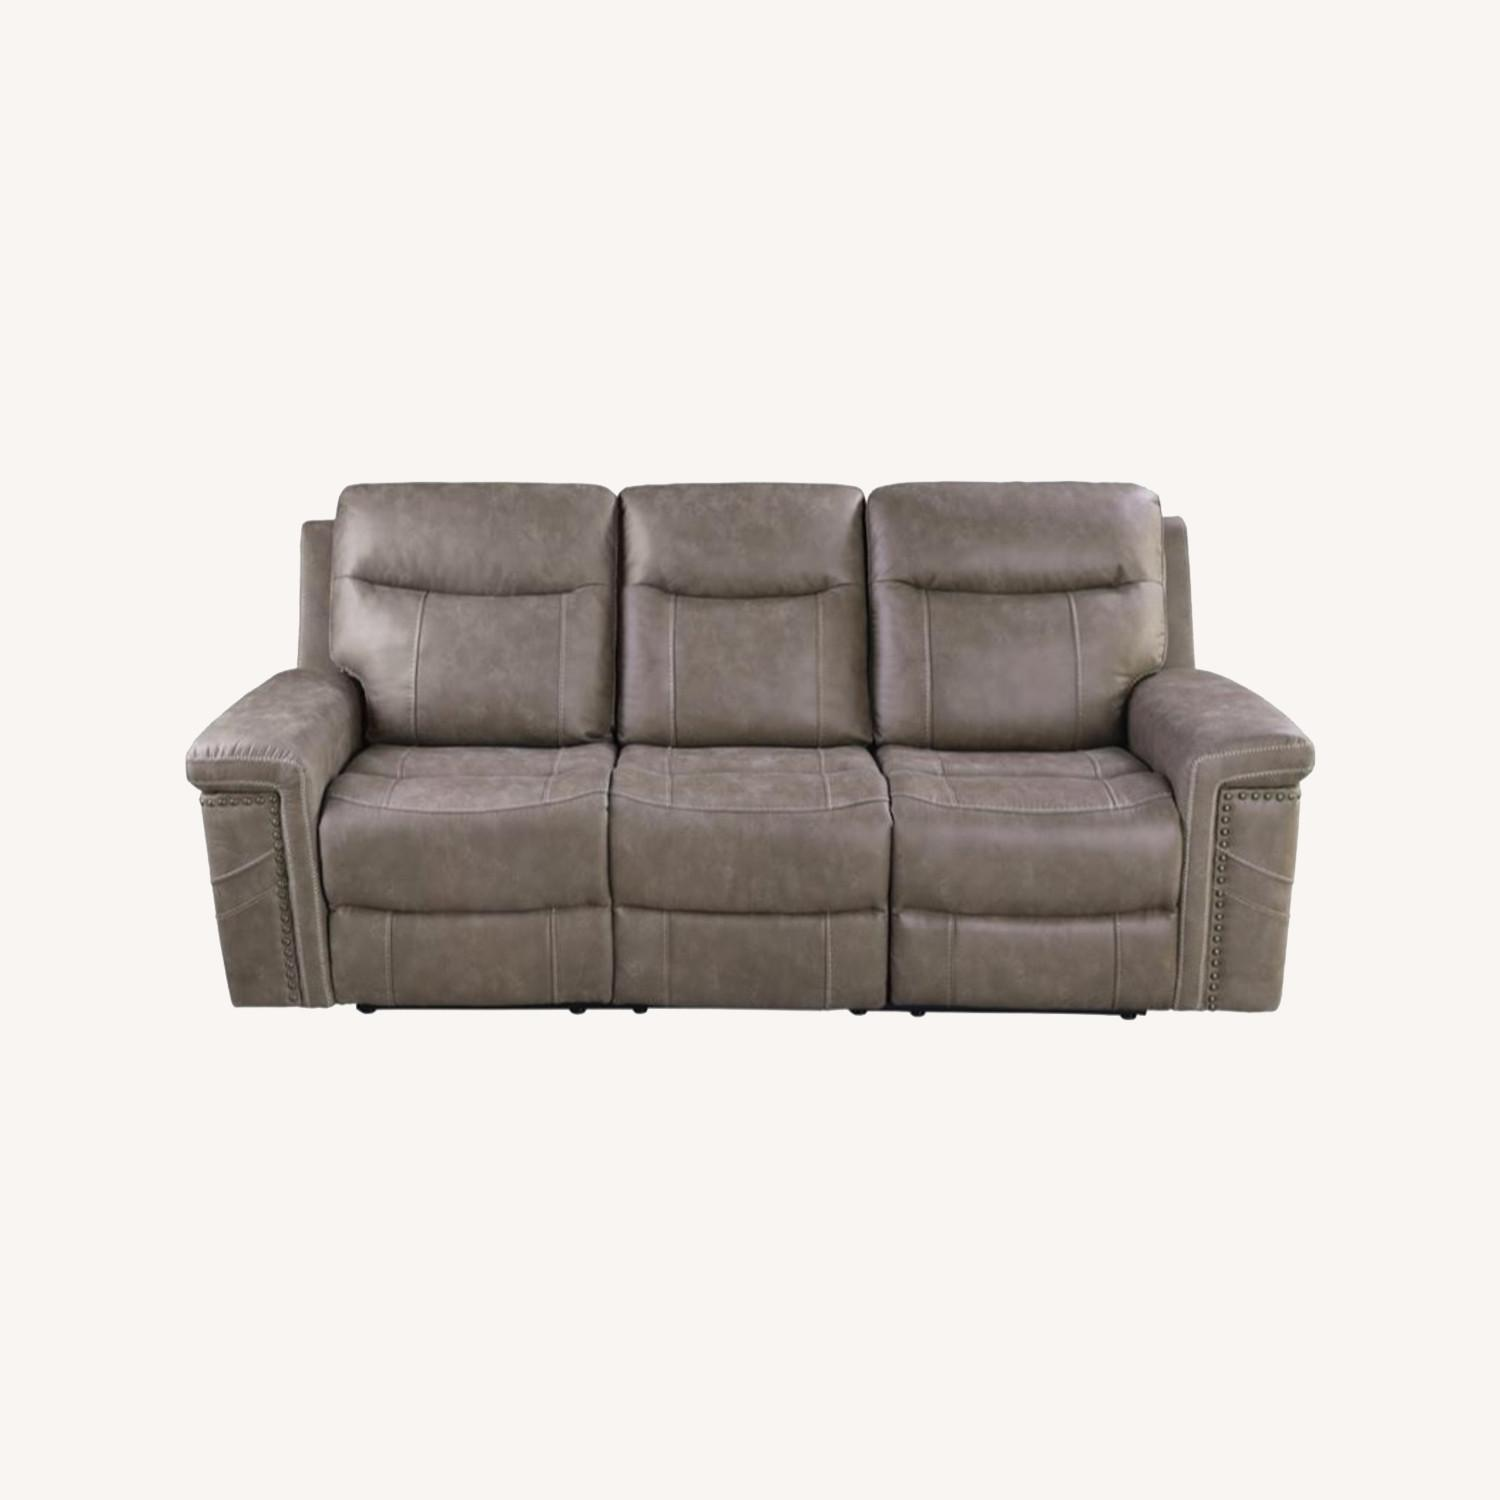 Power Sofa Recliner In Taupe Upholstery - image-8